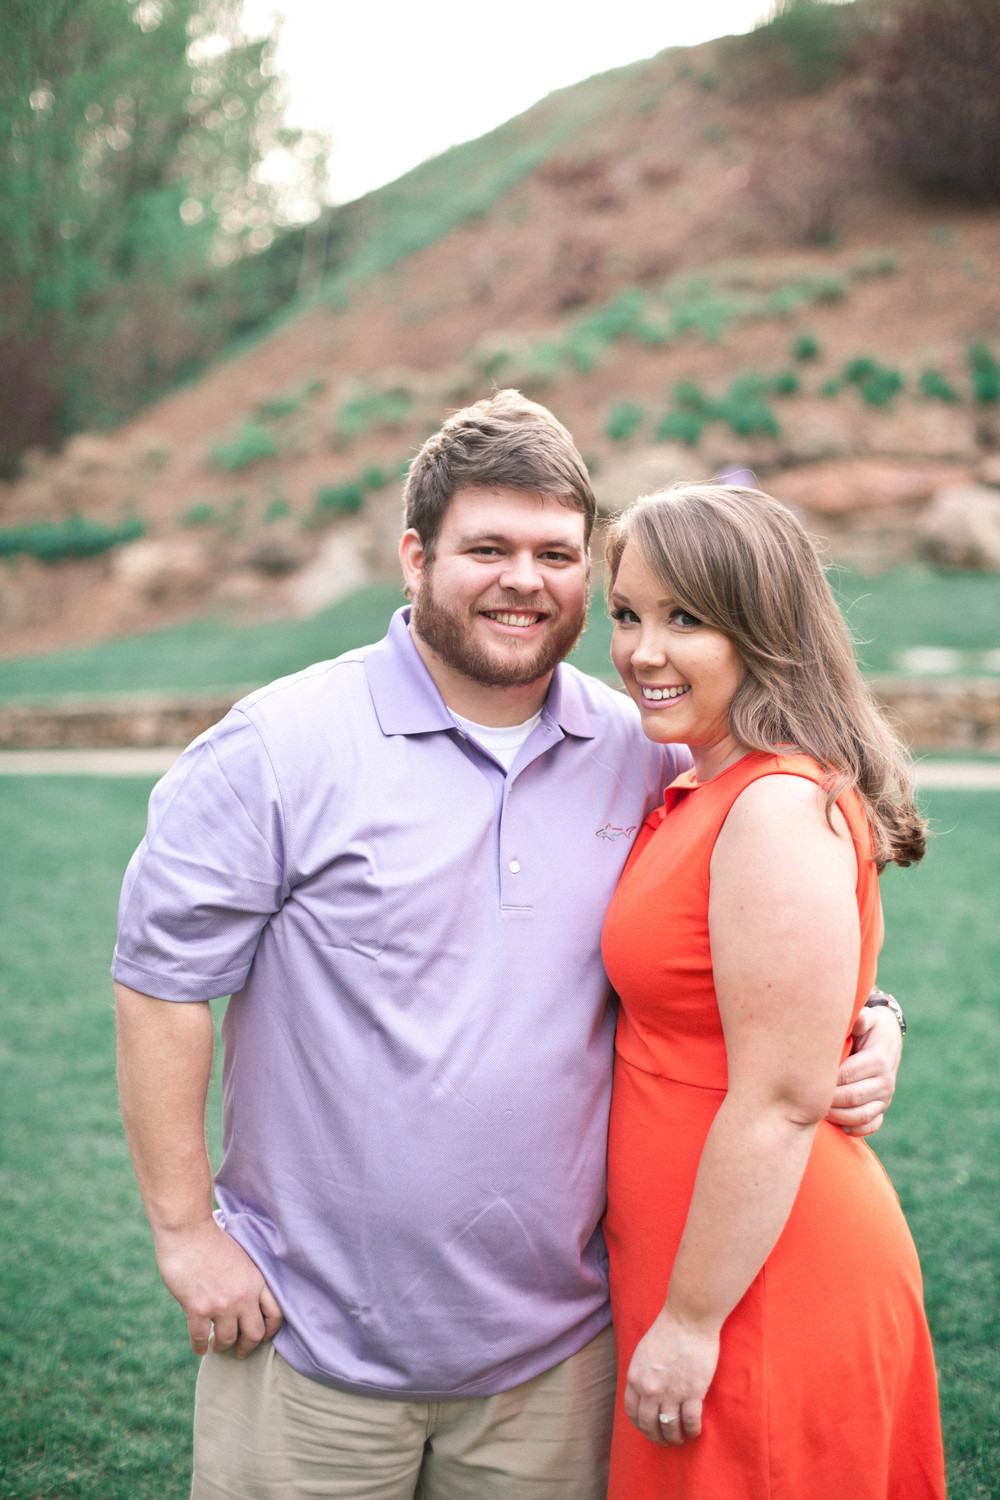 zach_gabbie_engagement_poured_out_photography-42.jpg